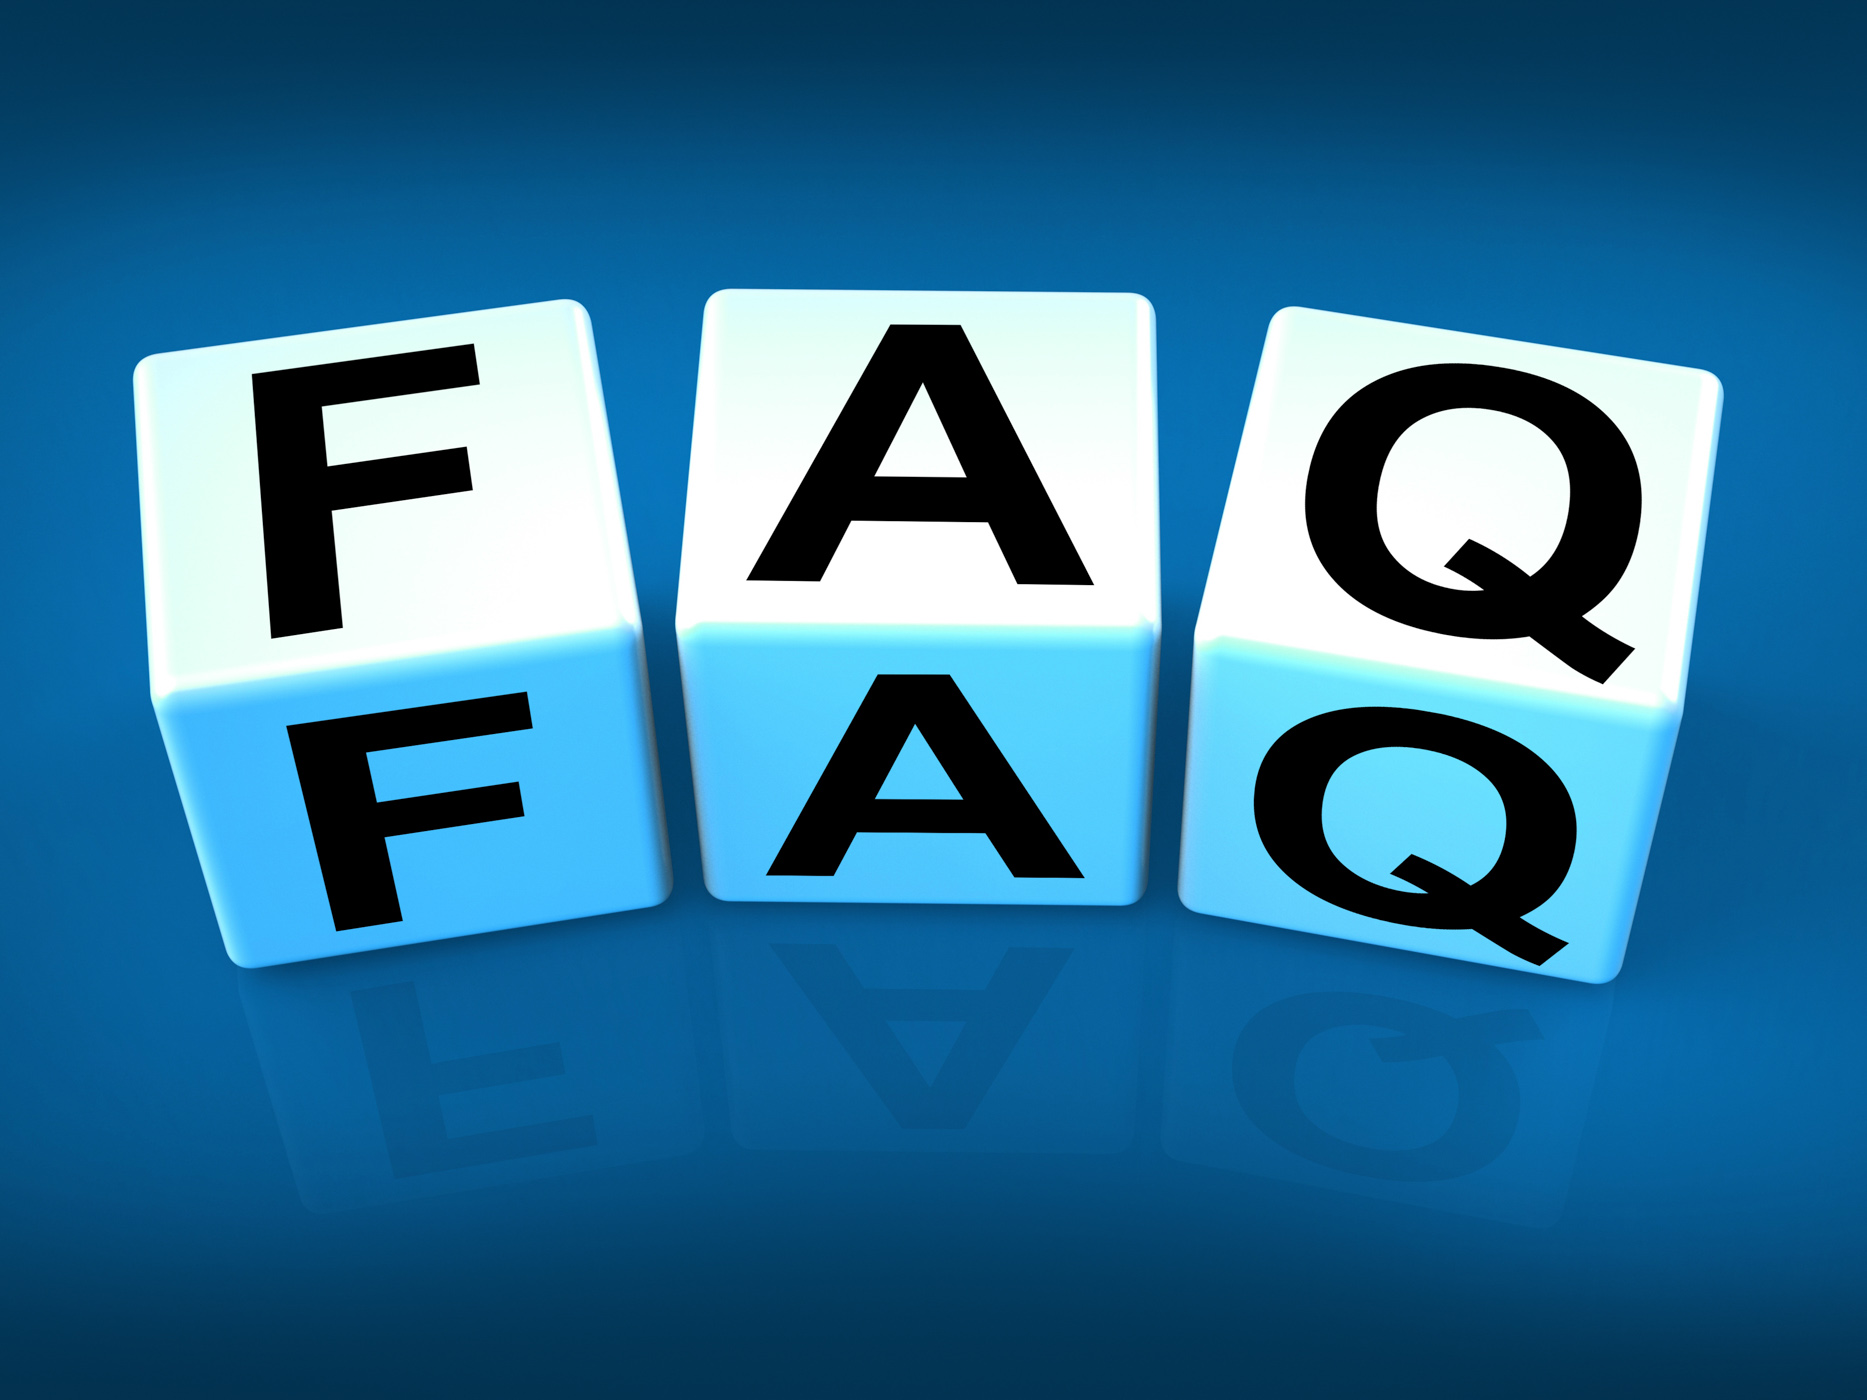 Faq Blocks Indicate Question Answer Information and Advice, 3d, Inquiry, Solution, Sign, HQ Photo